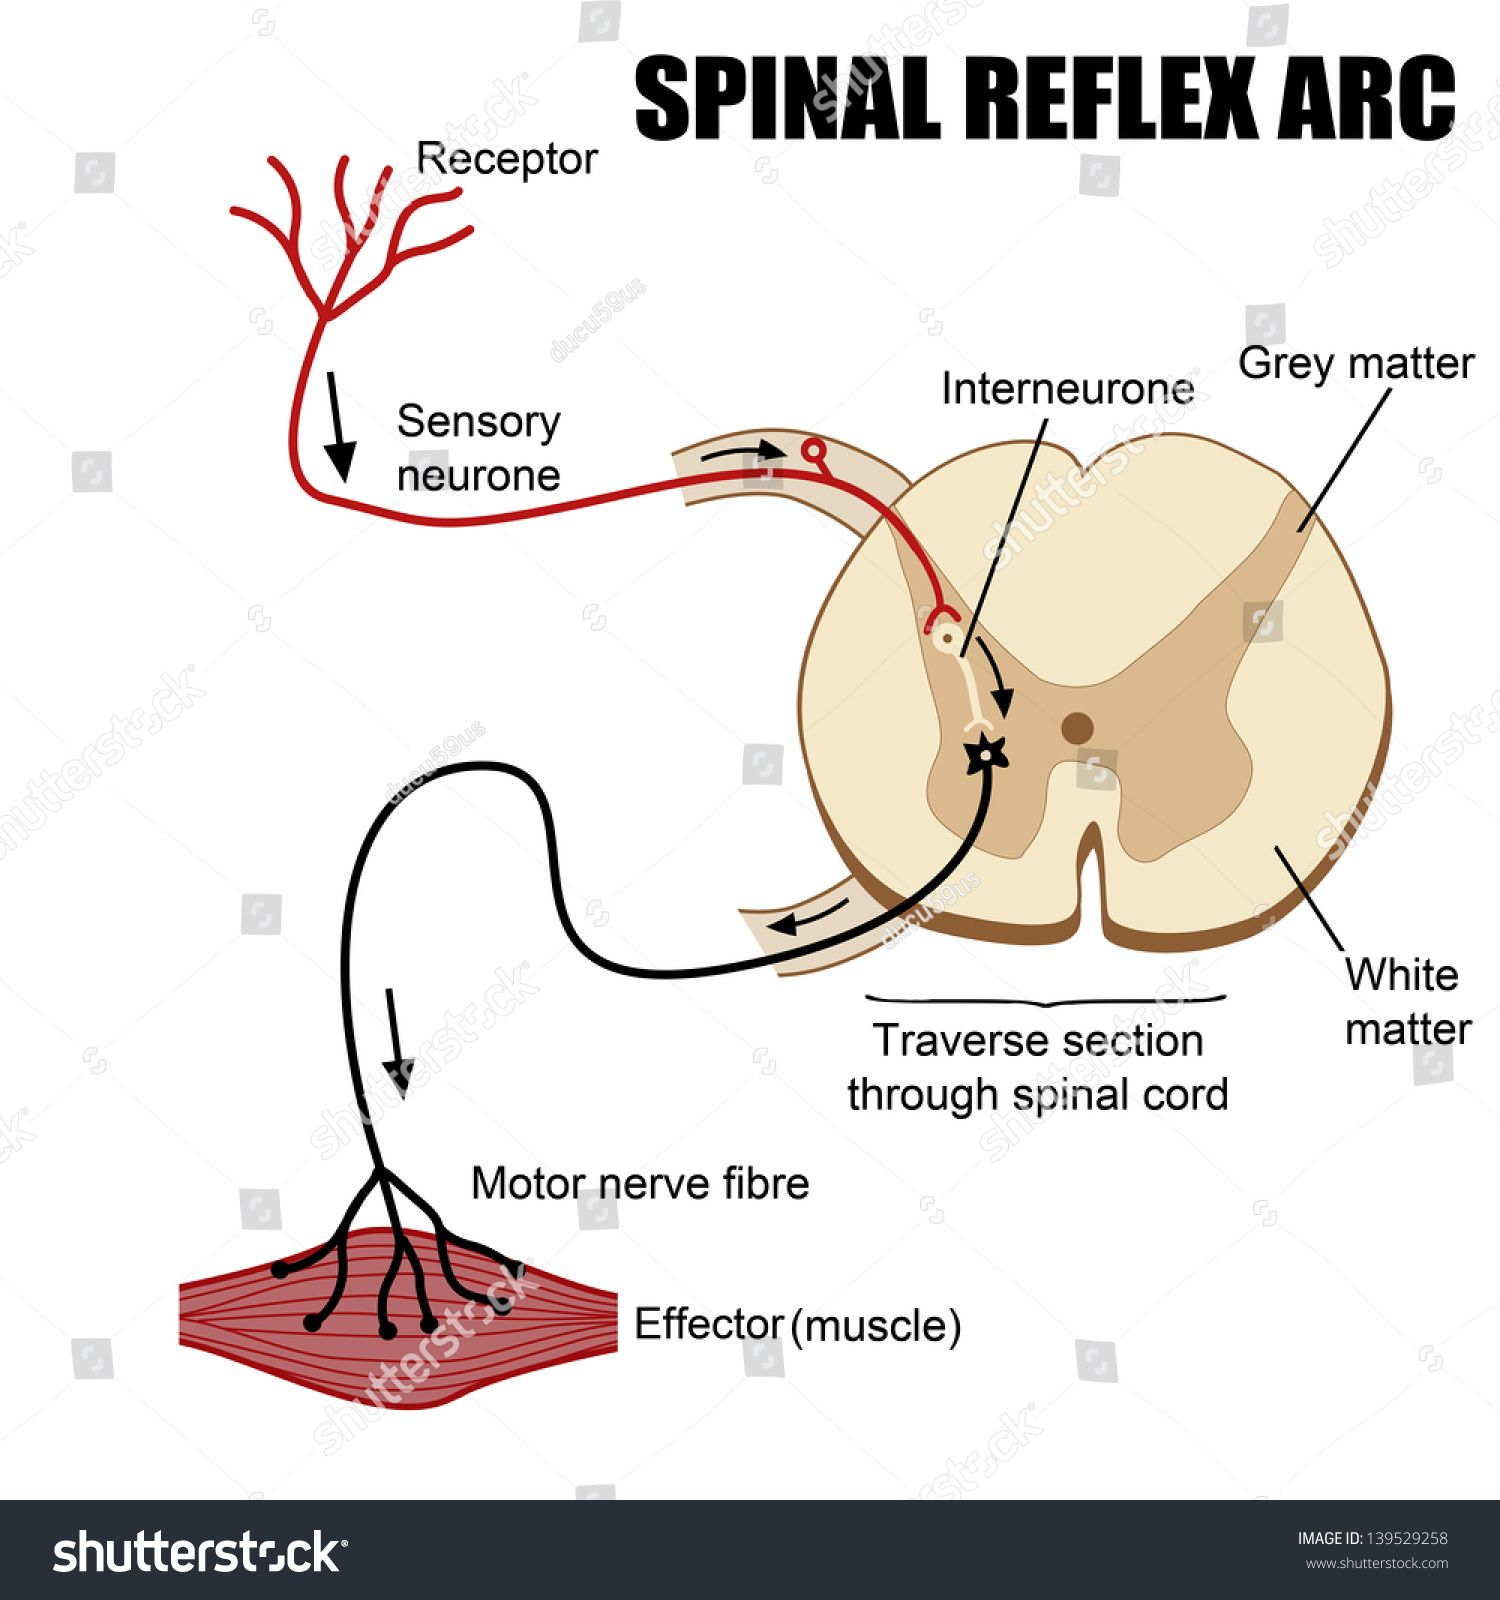 Spinal reflex arc neuroscience central nervous system cns spinal reflex arc ccuart Image collections